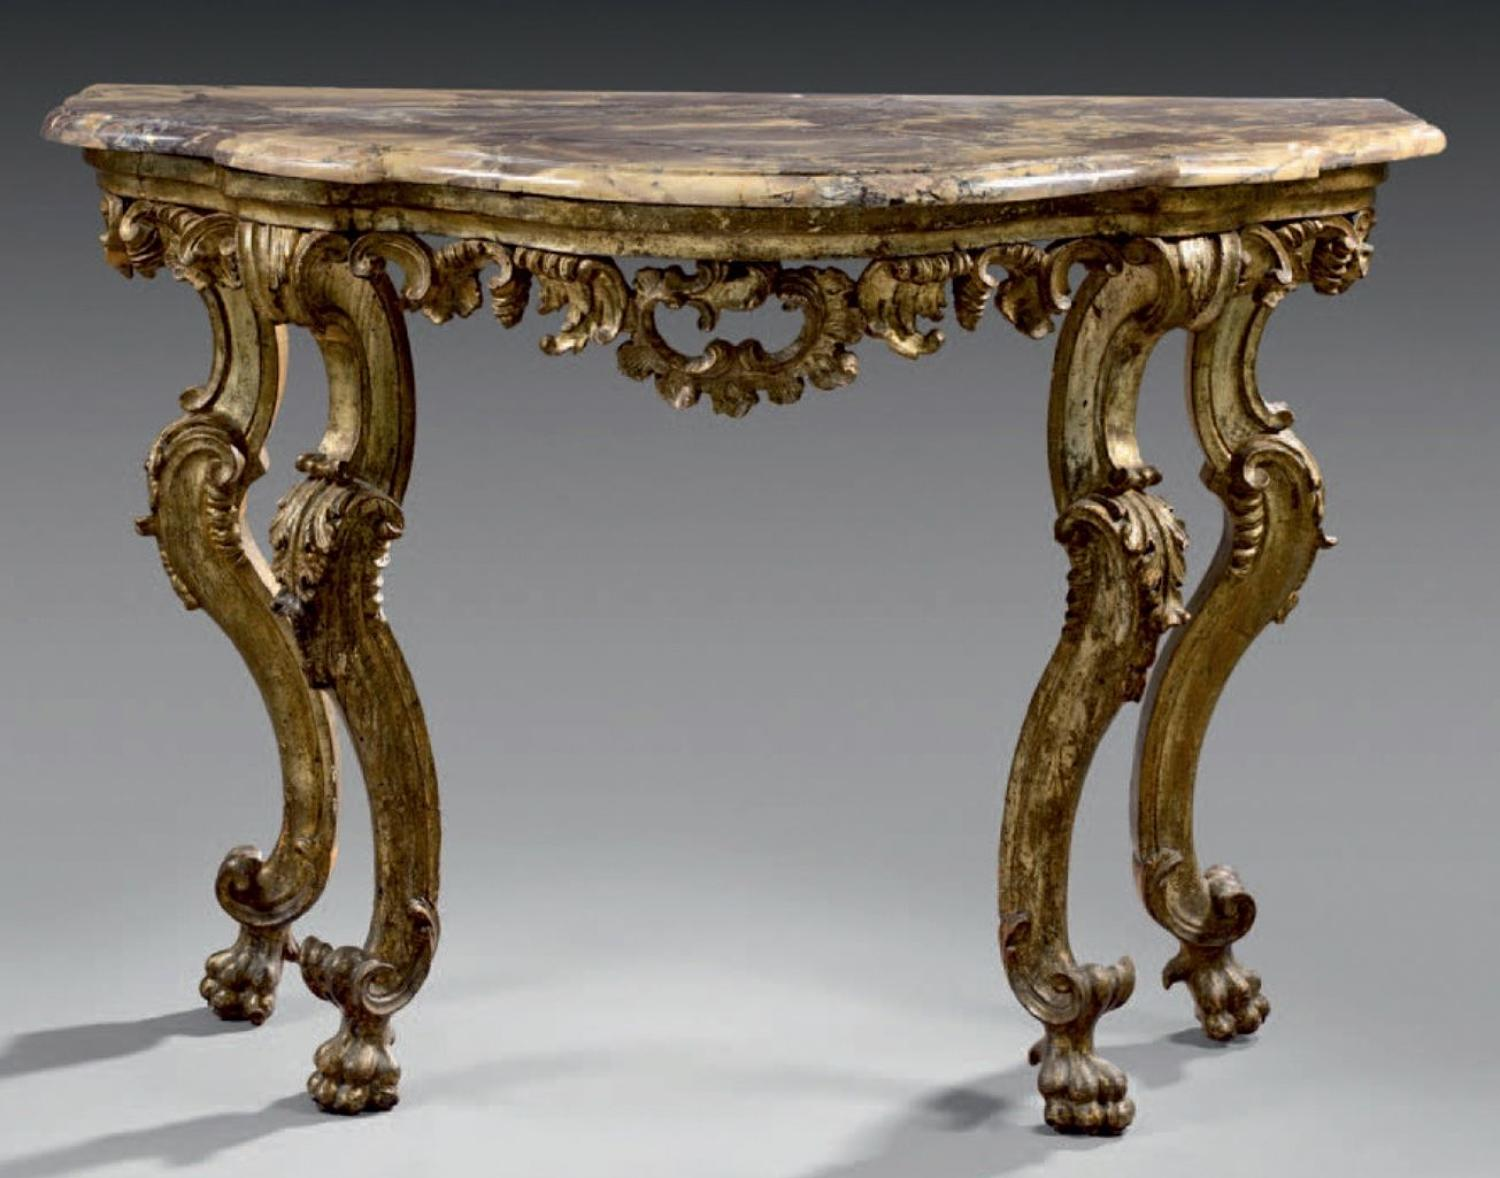 A CARVED GILTWOOD MID 18TH CENTURY CONSOLE